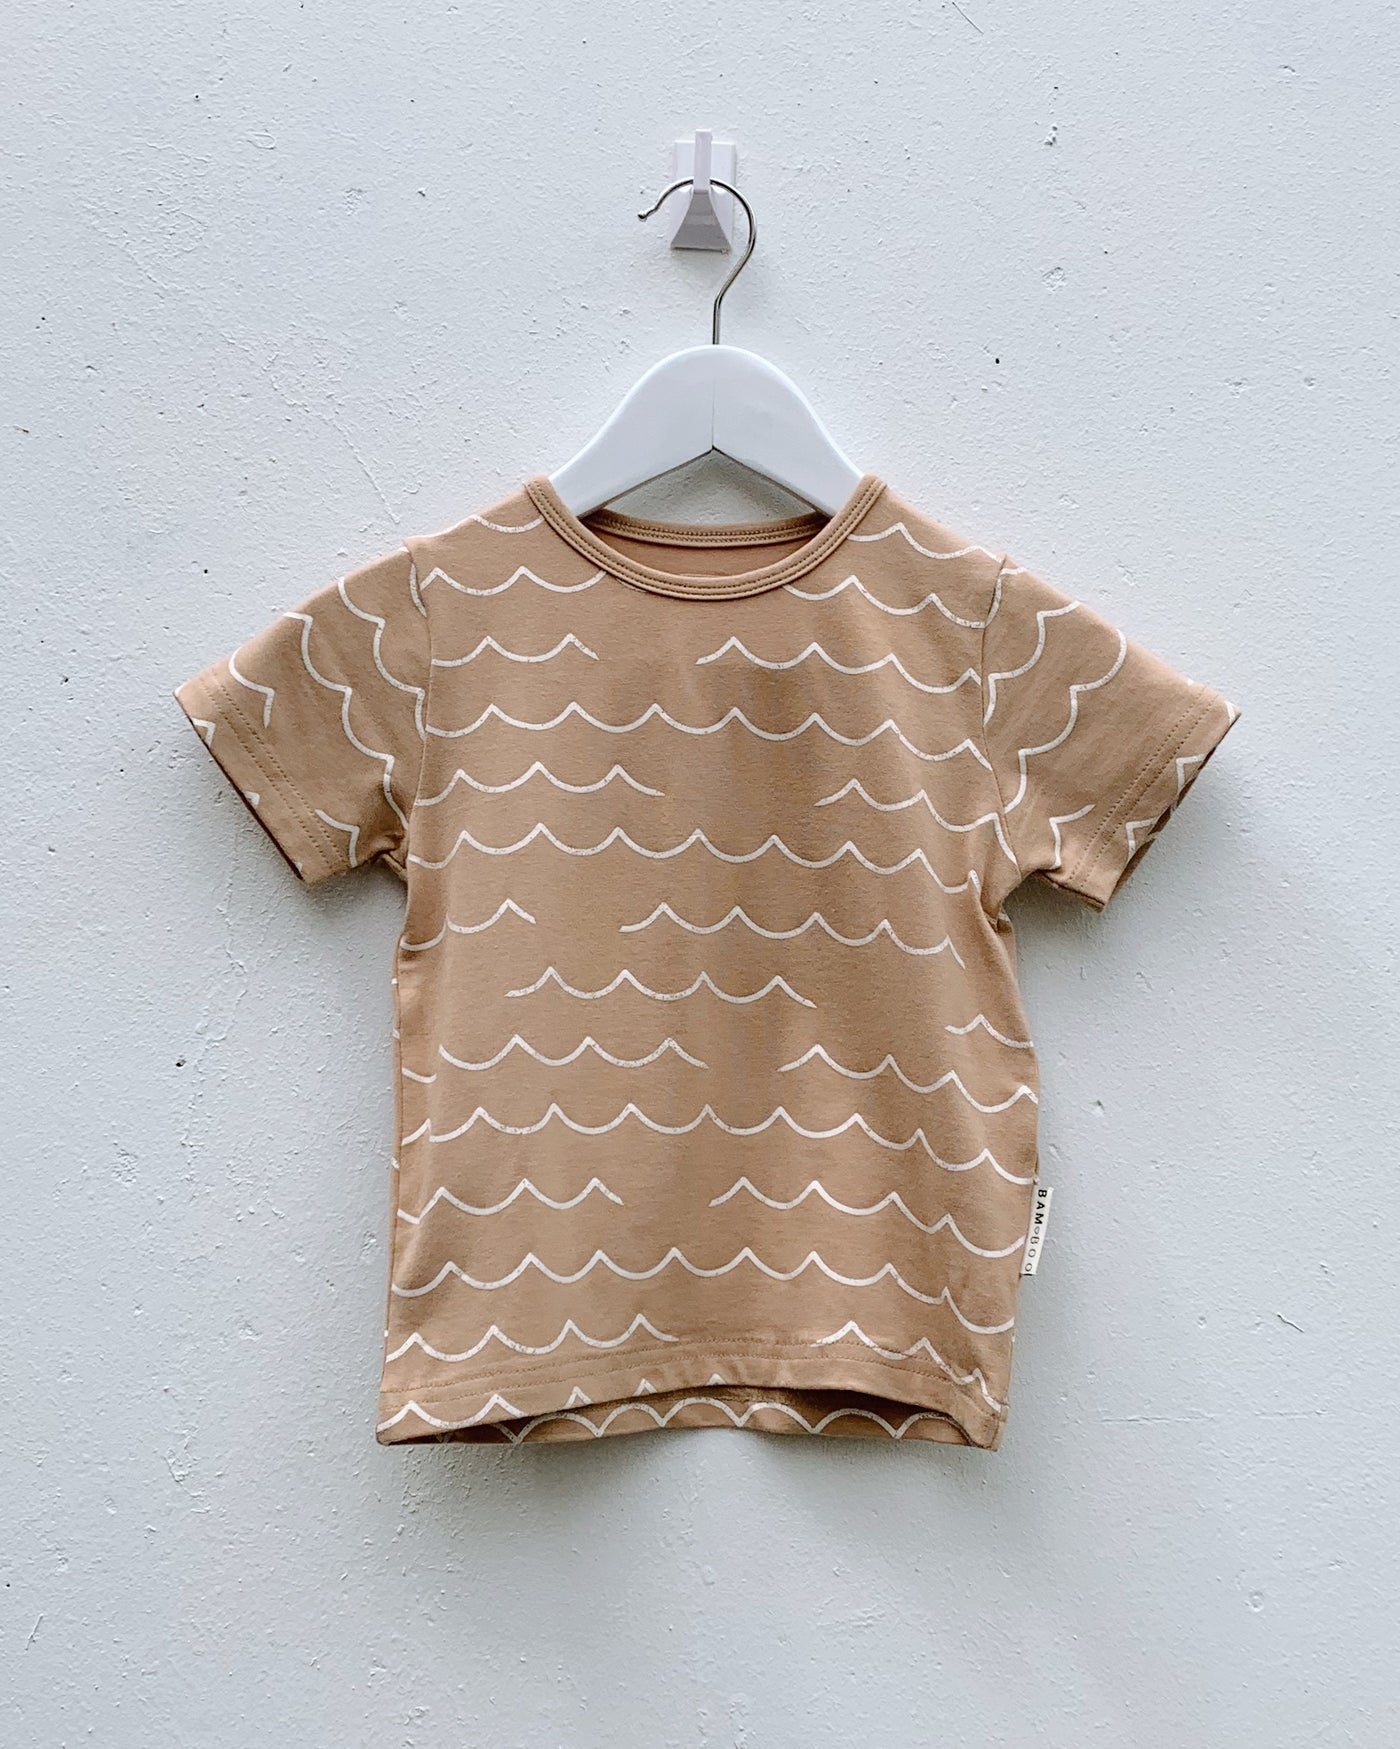 Making Waves Tee - Honey - LAST ONE (6-12M)!